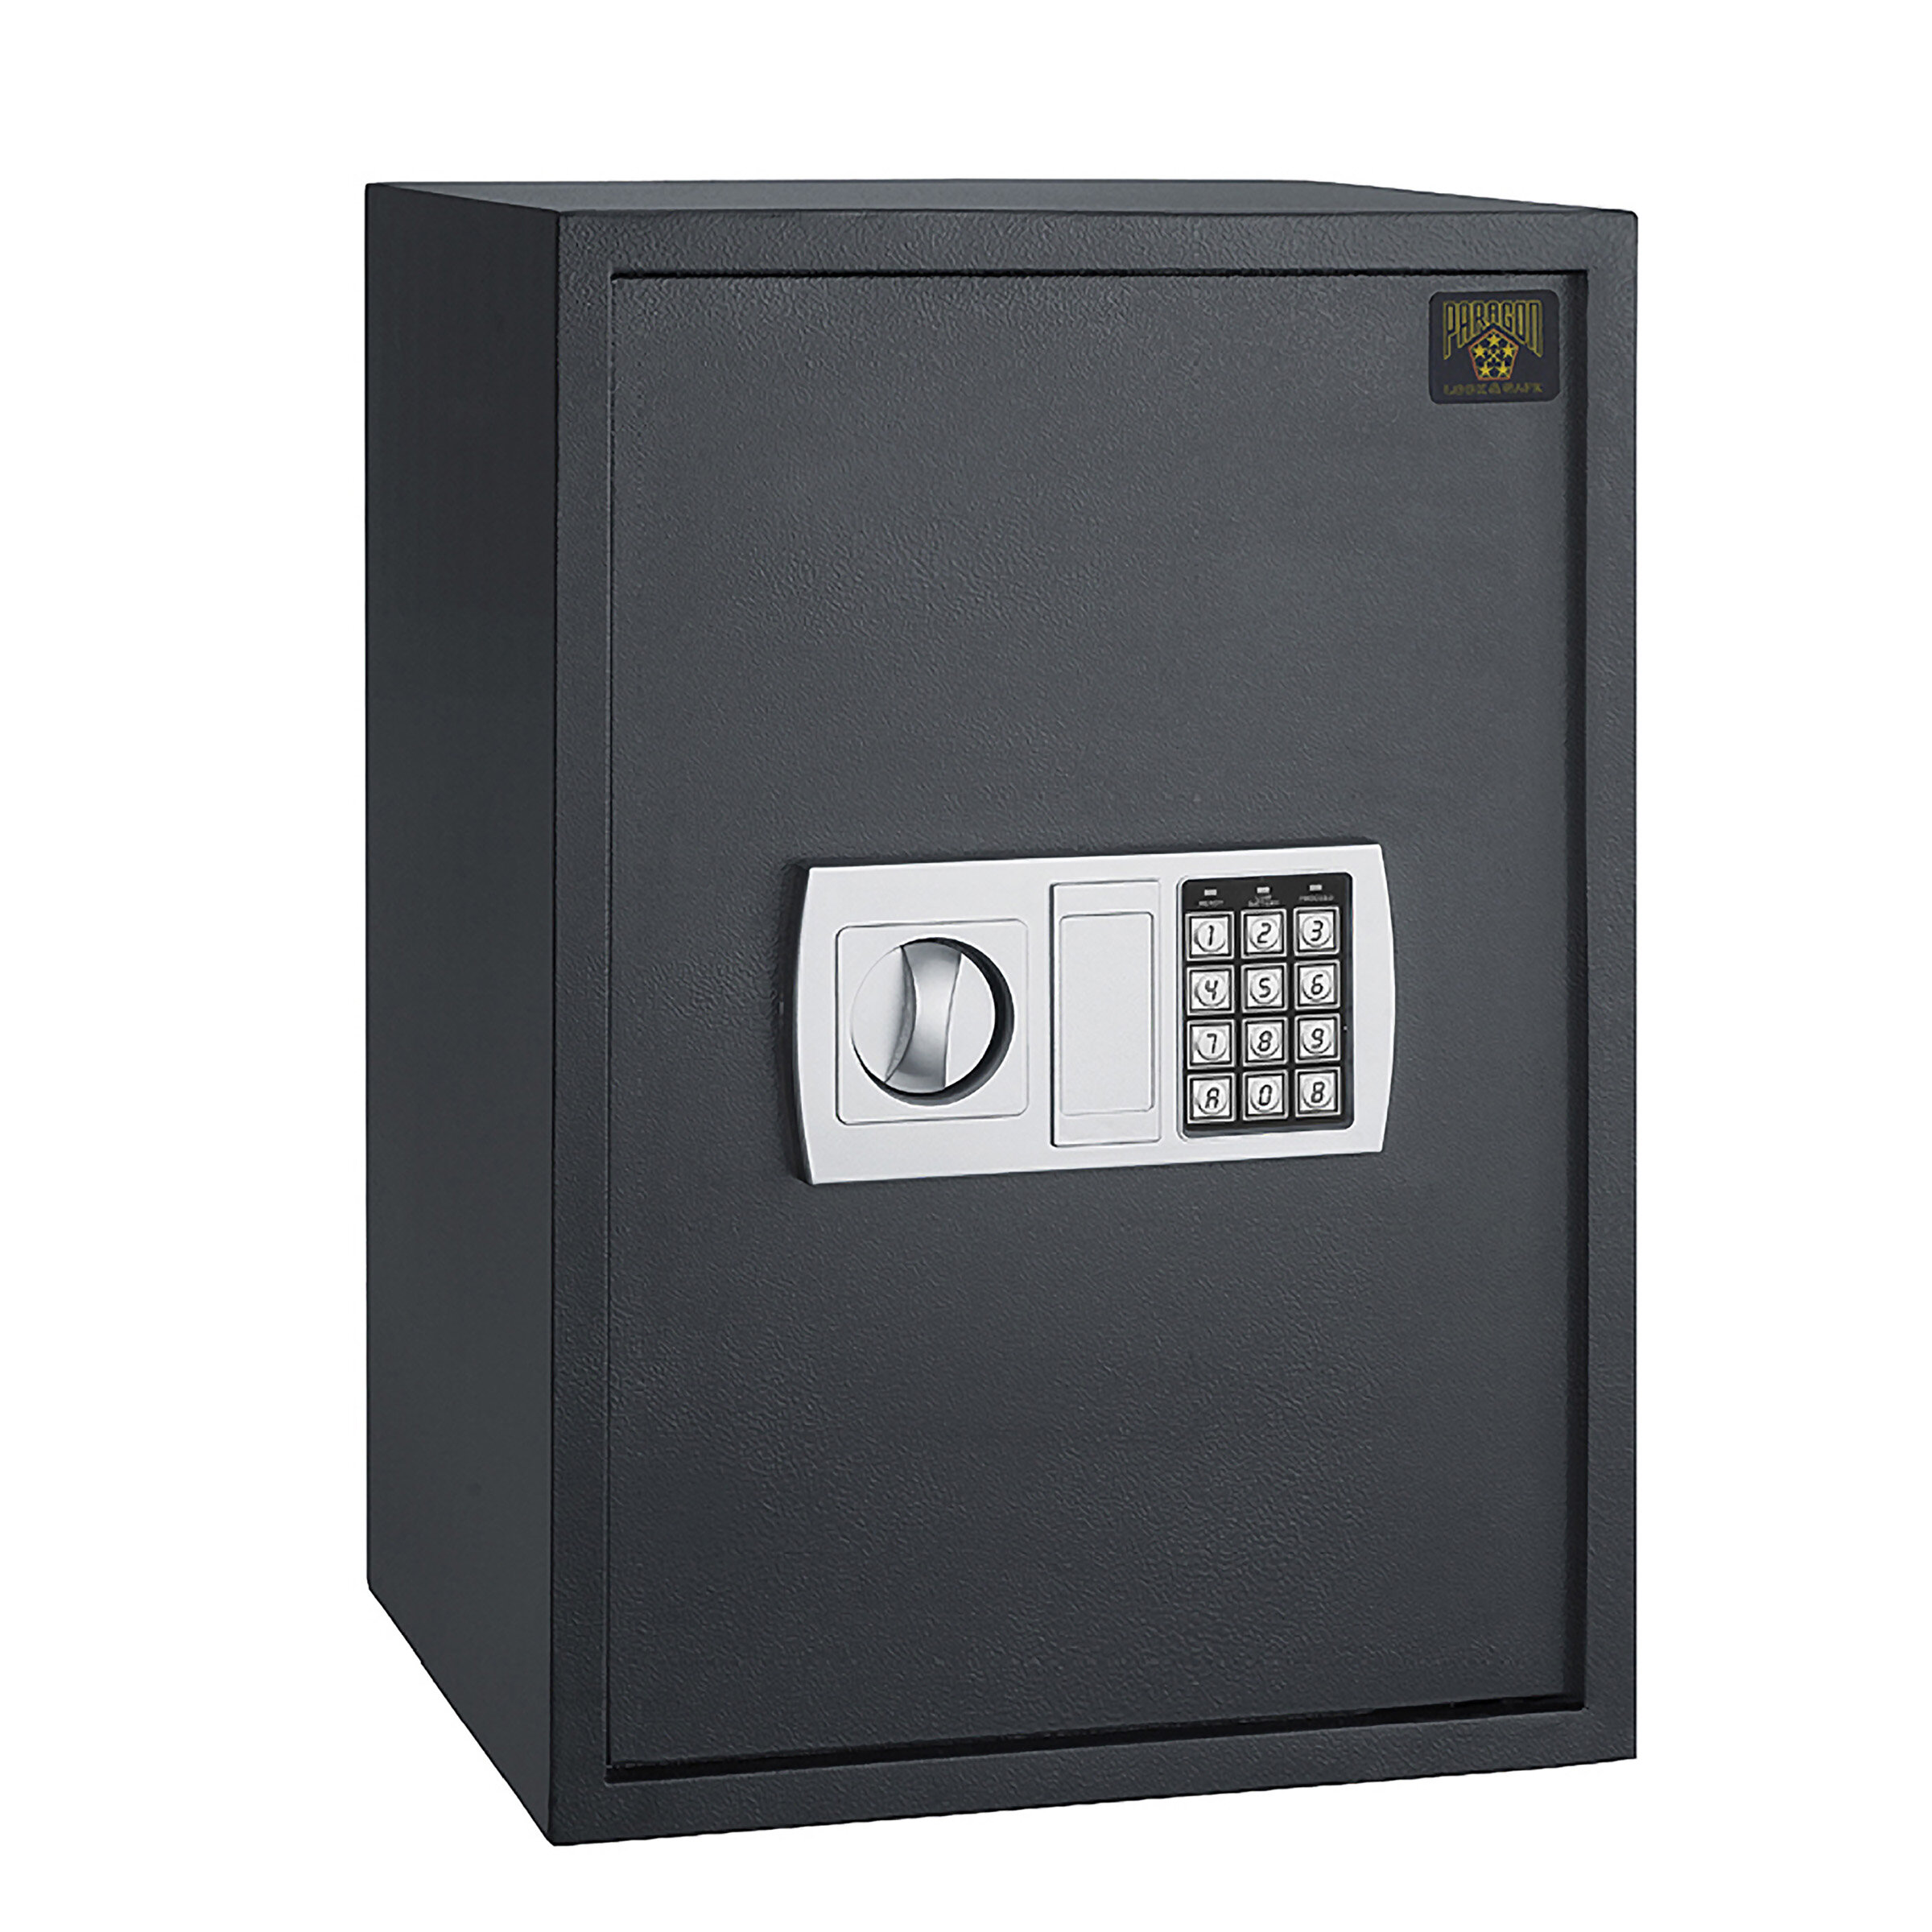 Paragon Safes Digital Security Safe With Electronic Lock Reviews Wayfair